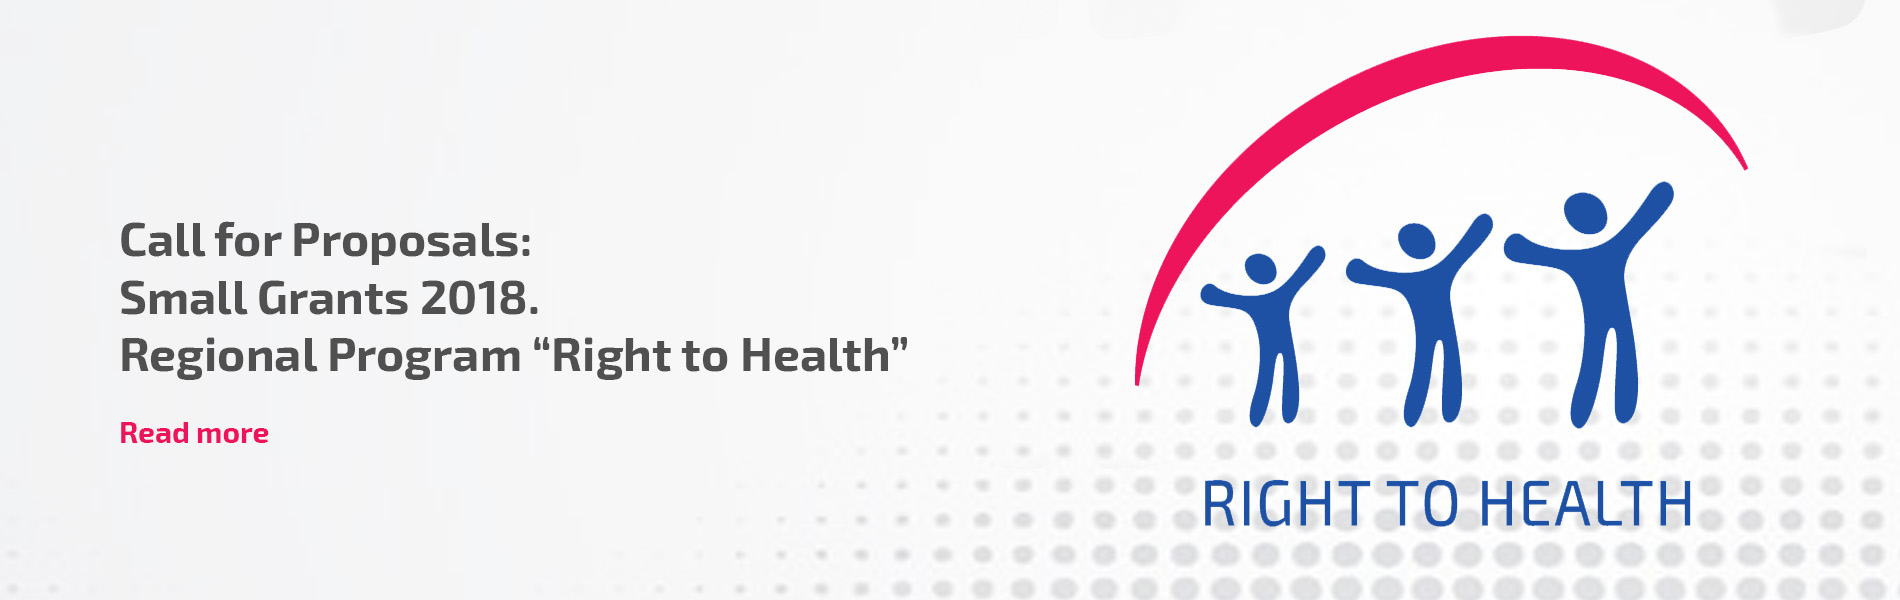 """Call for Proposals: Small Grants 2018. Regional Program """"Right to Health"""""""